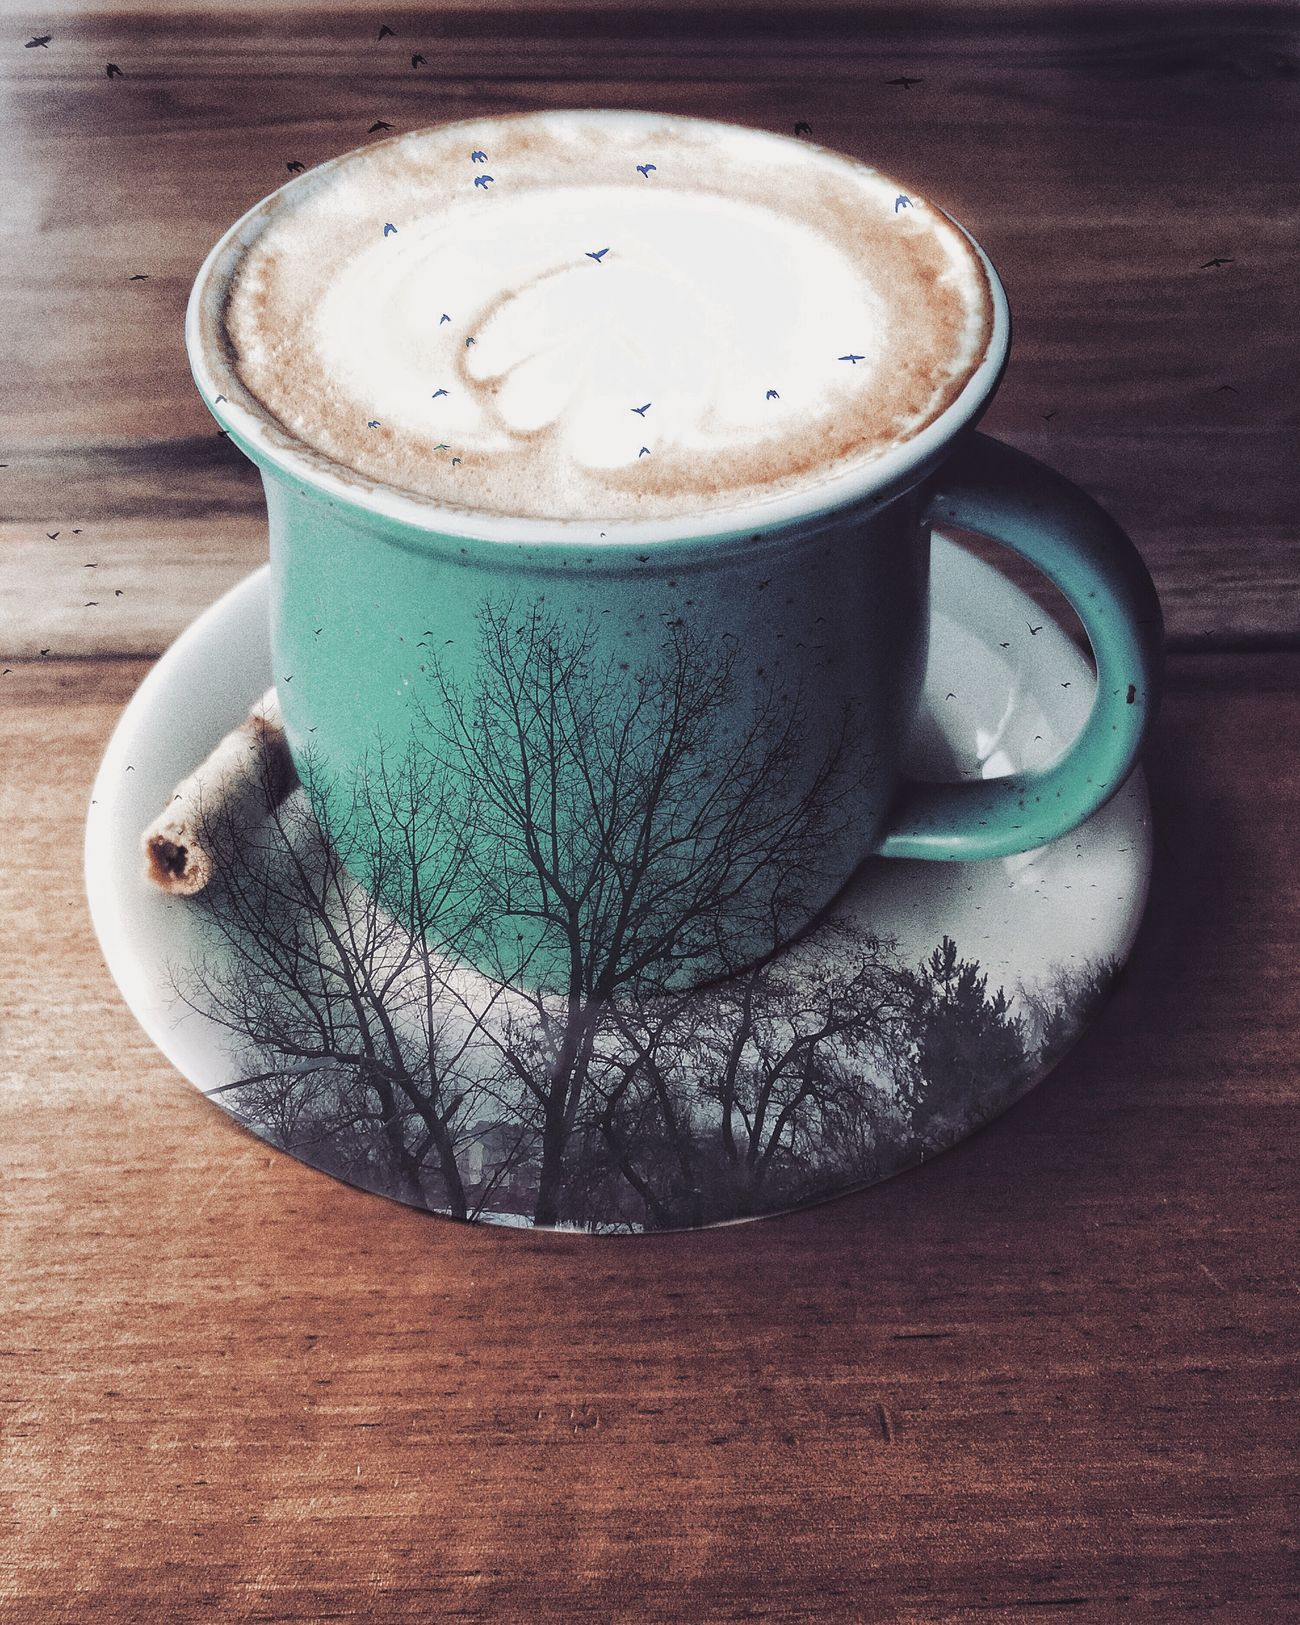 Drink Coffee - Drink Coffee Cup Food And Drink Refreshment Frothy Drink Table Freshness Cappuccino Close-up Indoors  Latte Froth Art Froth Day First Eyeem Photo